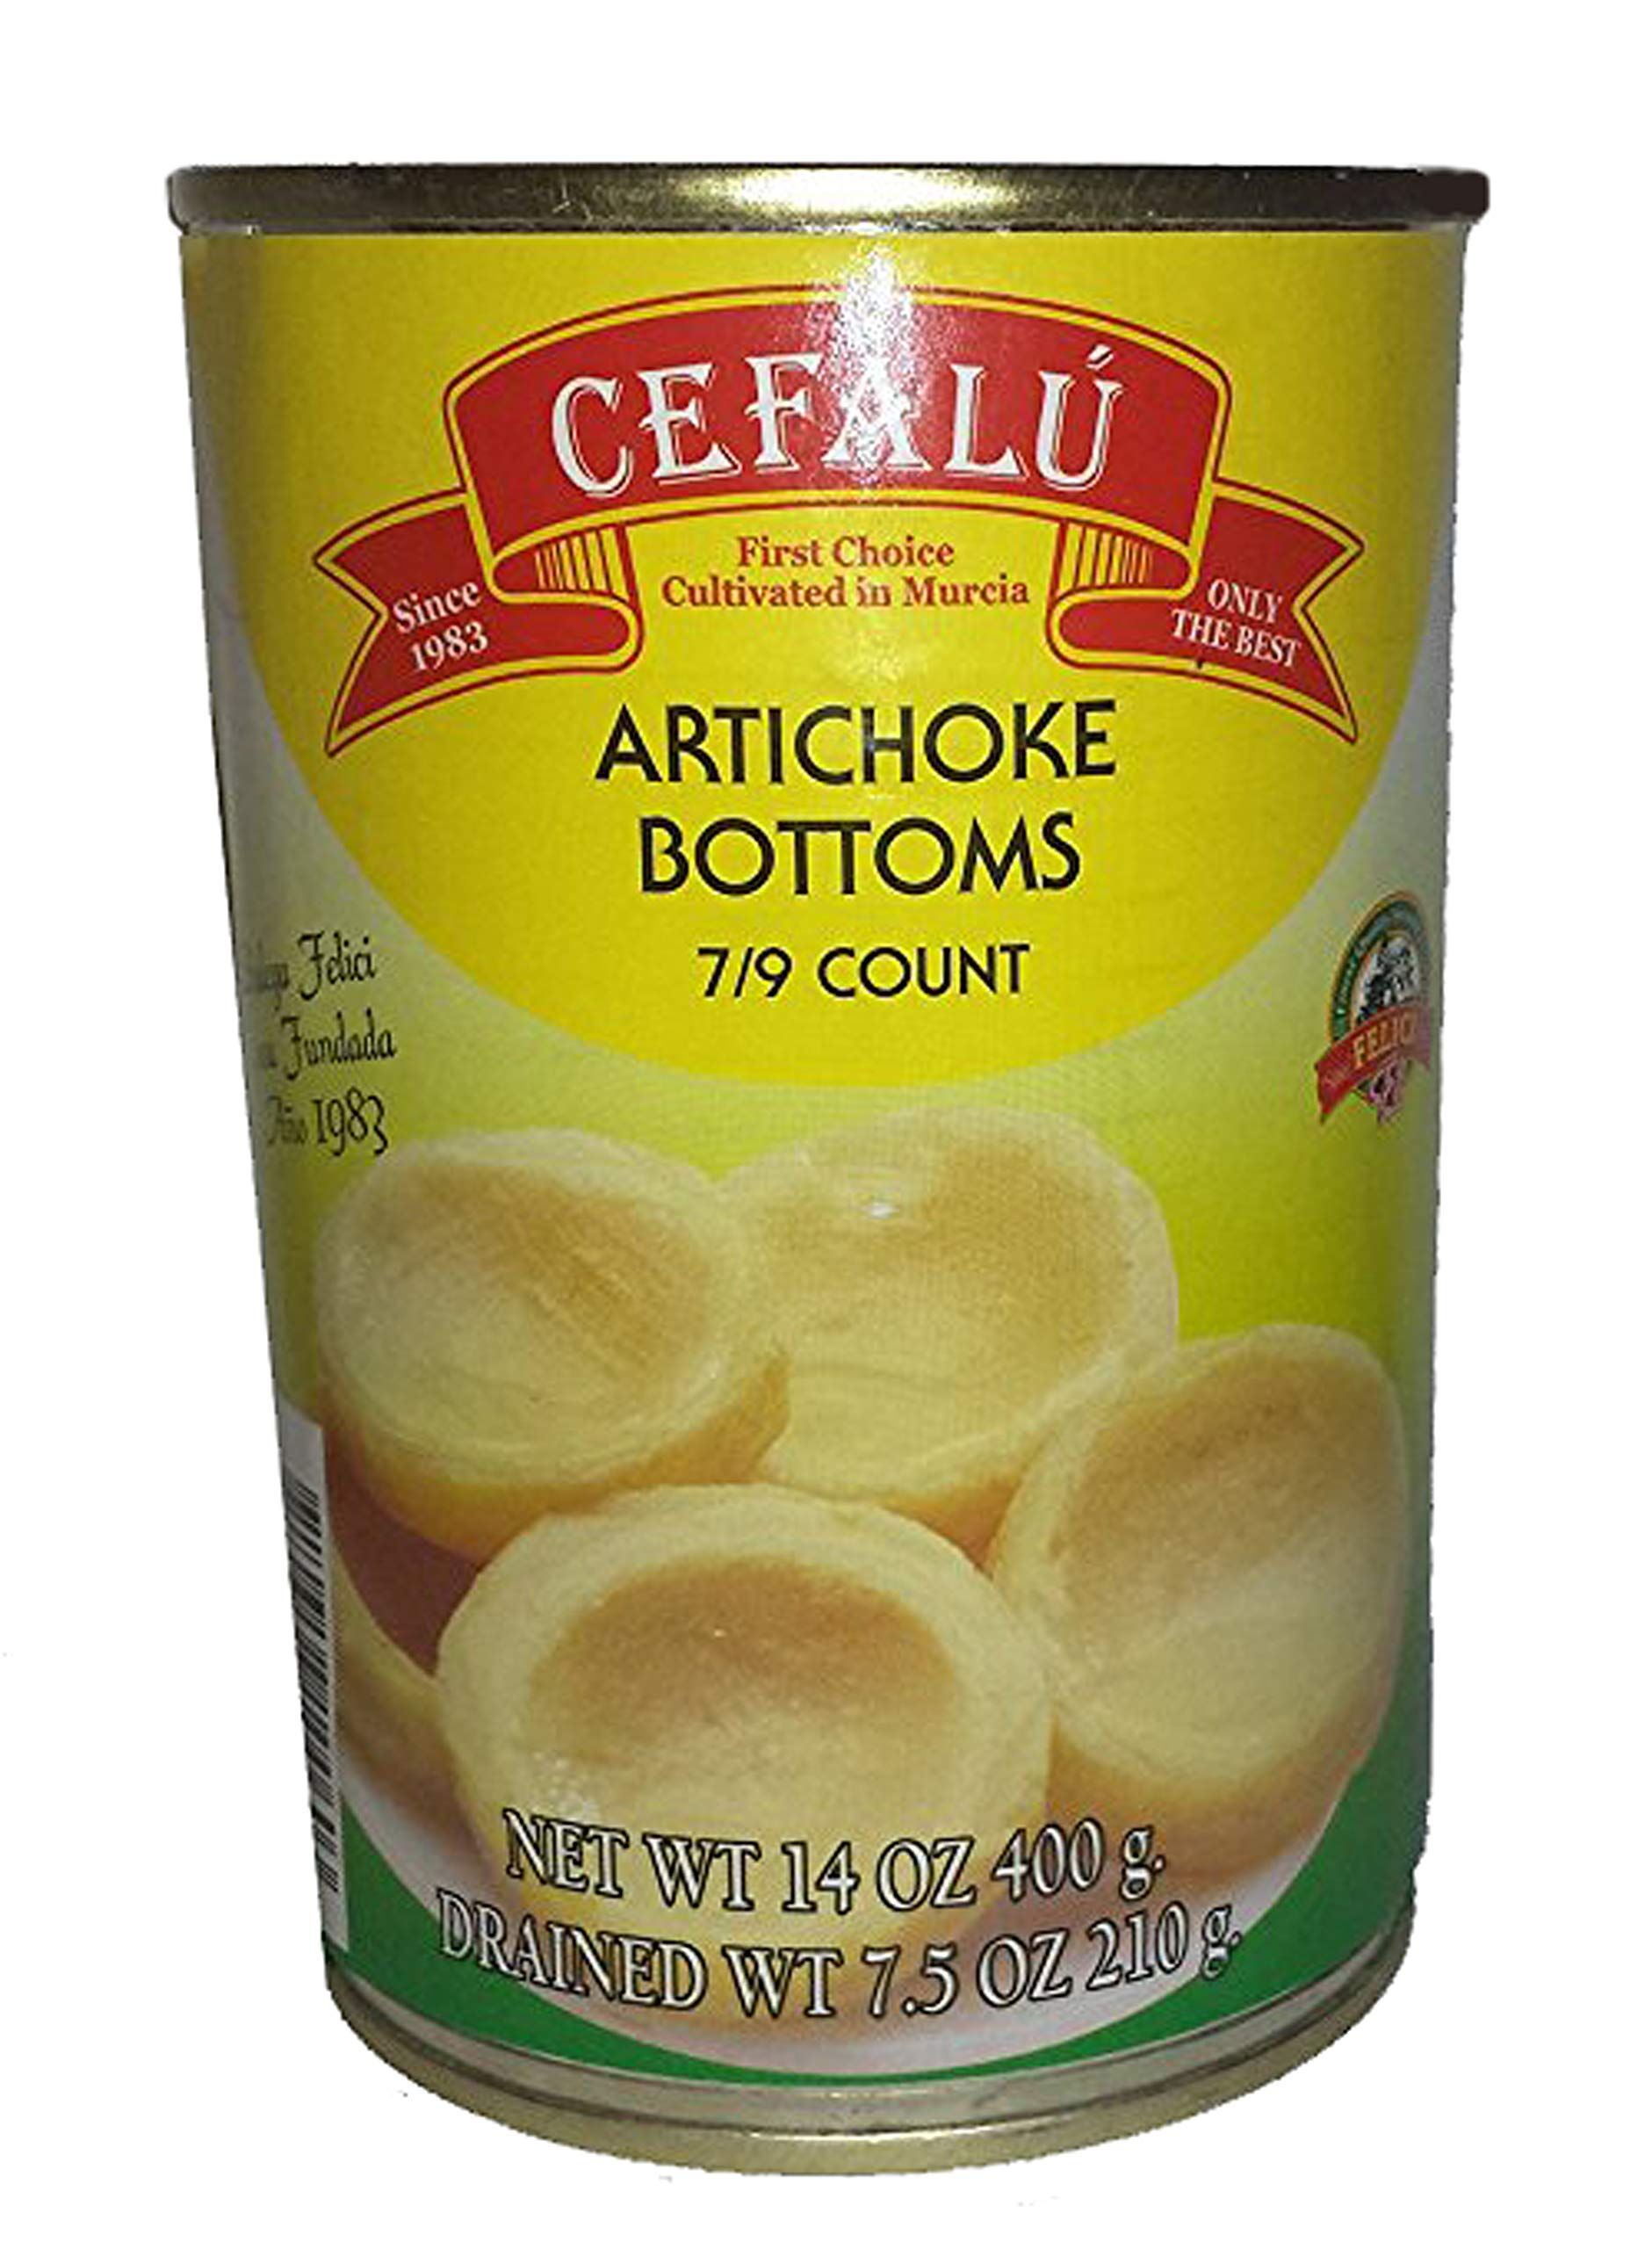 Cefalu Artichoke Bottoms Pack of 6 (14 Ounce Cans) Product of Spain, Non GMO, No MSG, No trans Fat, Gluten free